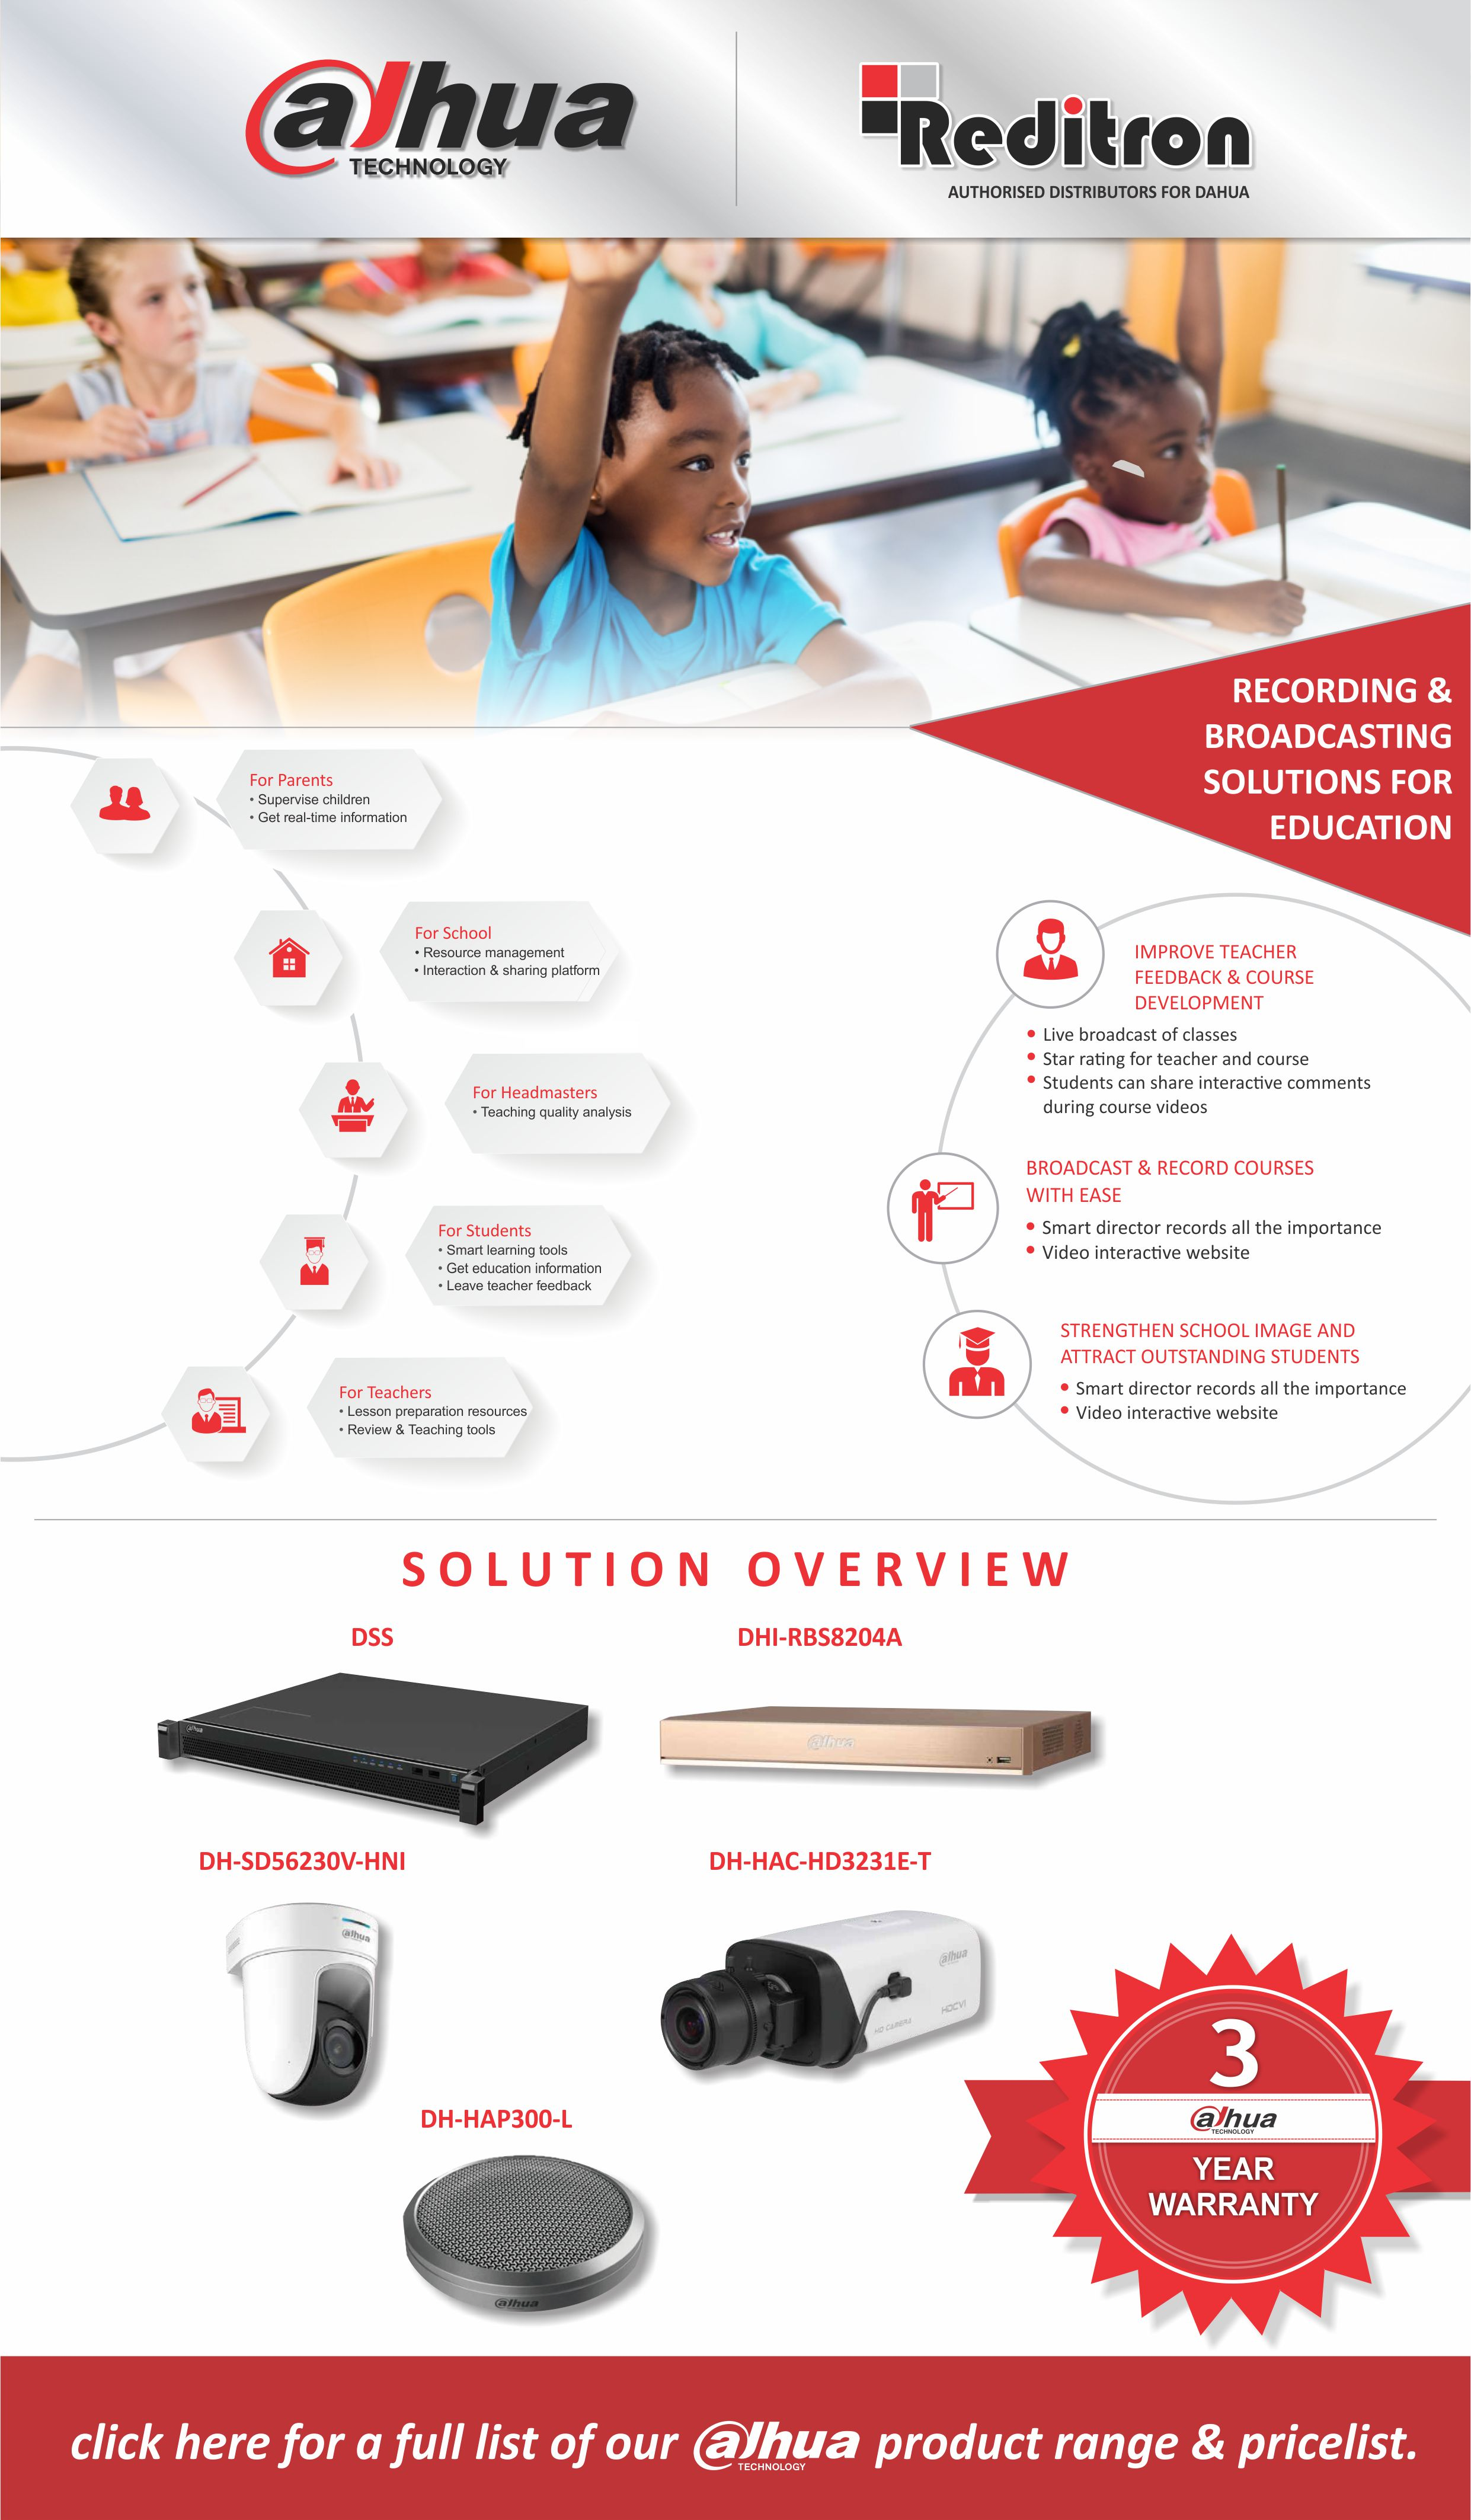 2017 July Dahua Education Solutions Reditron Emailer2